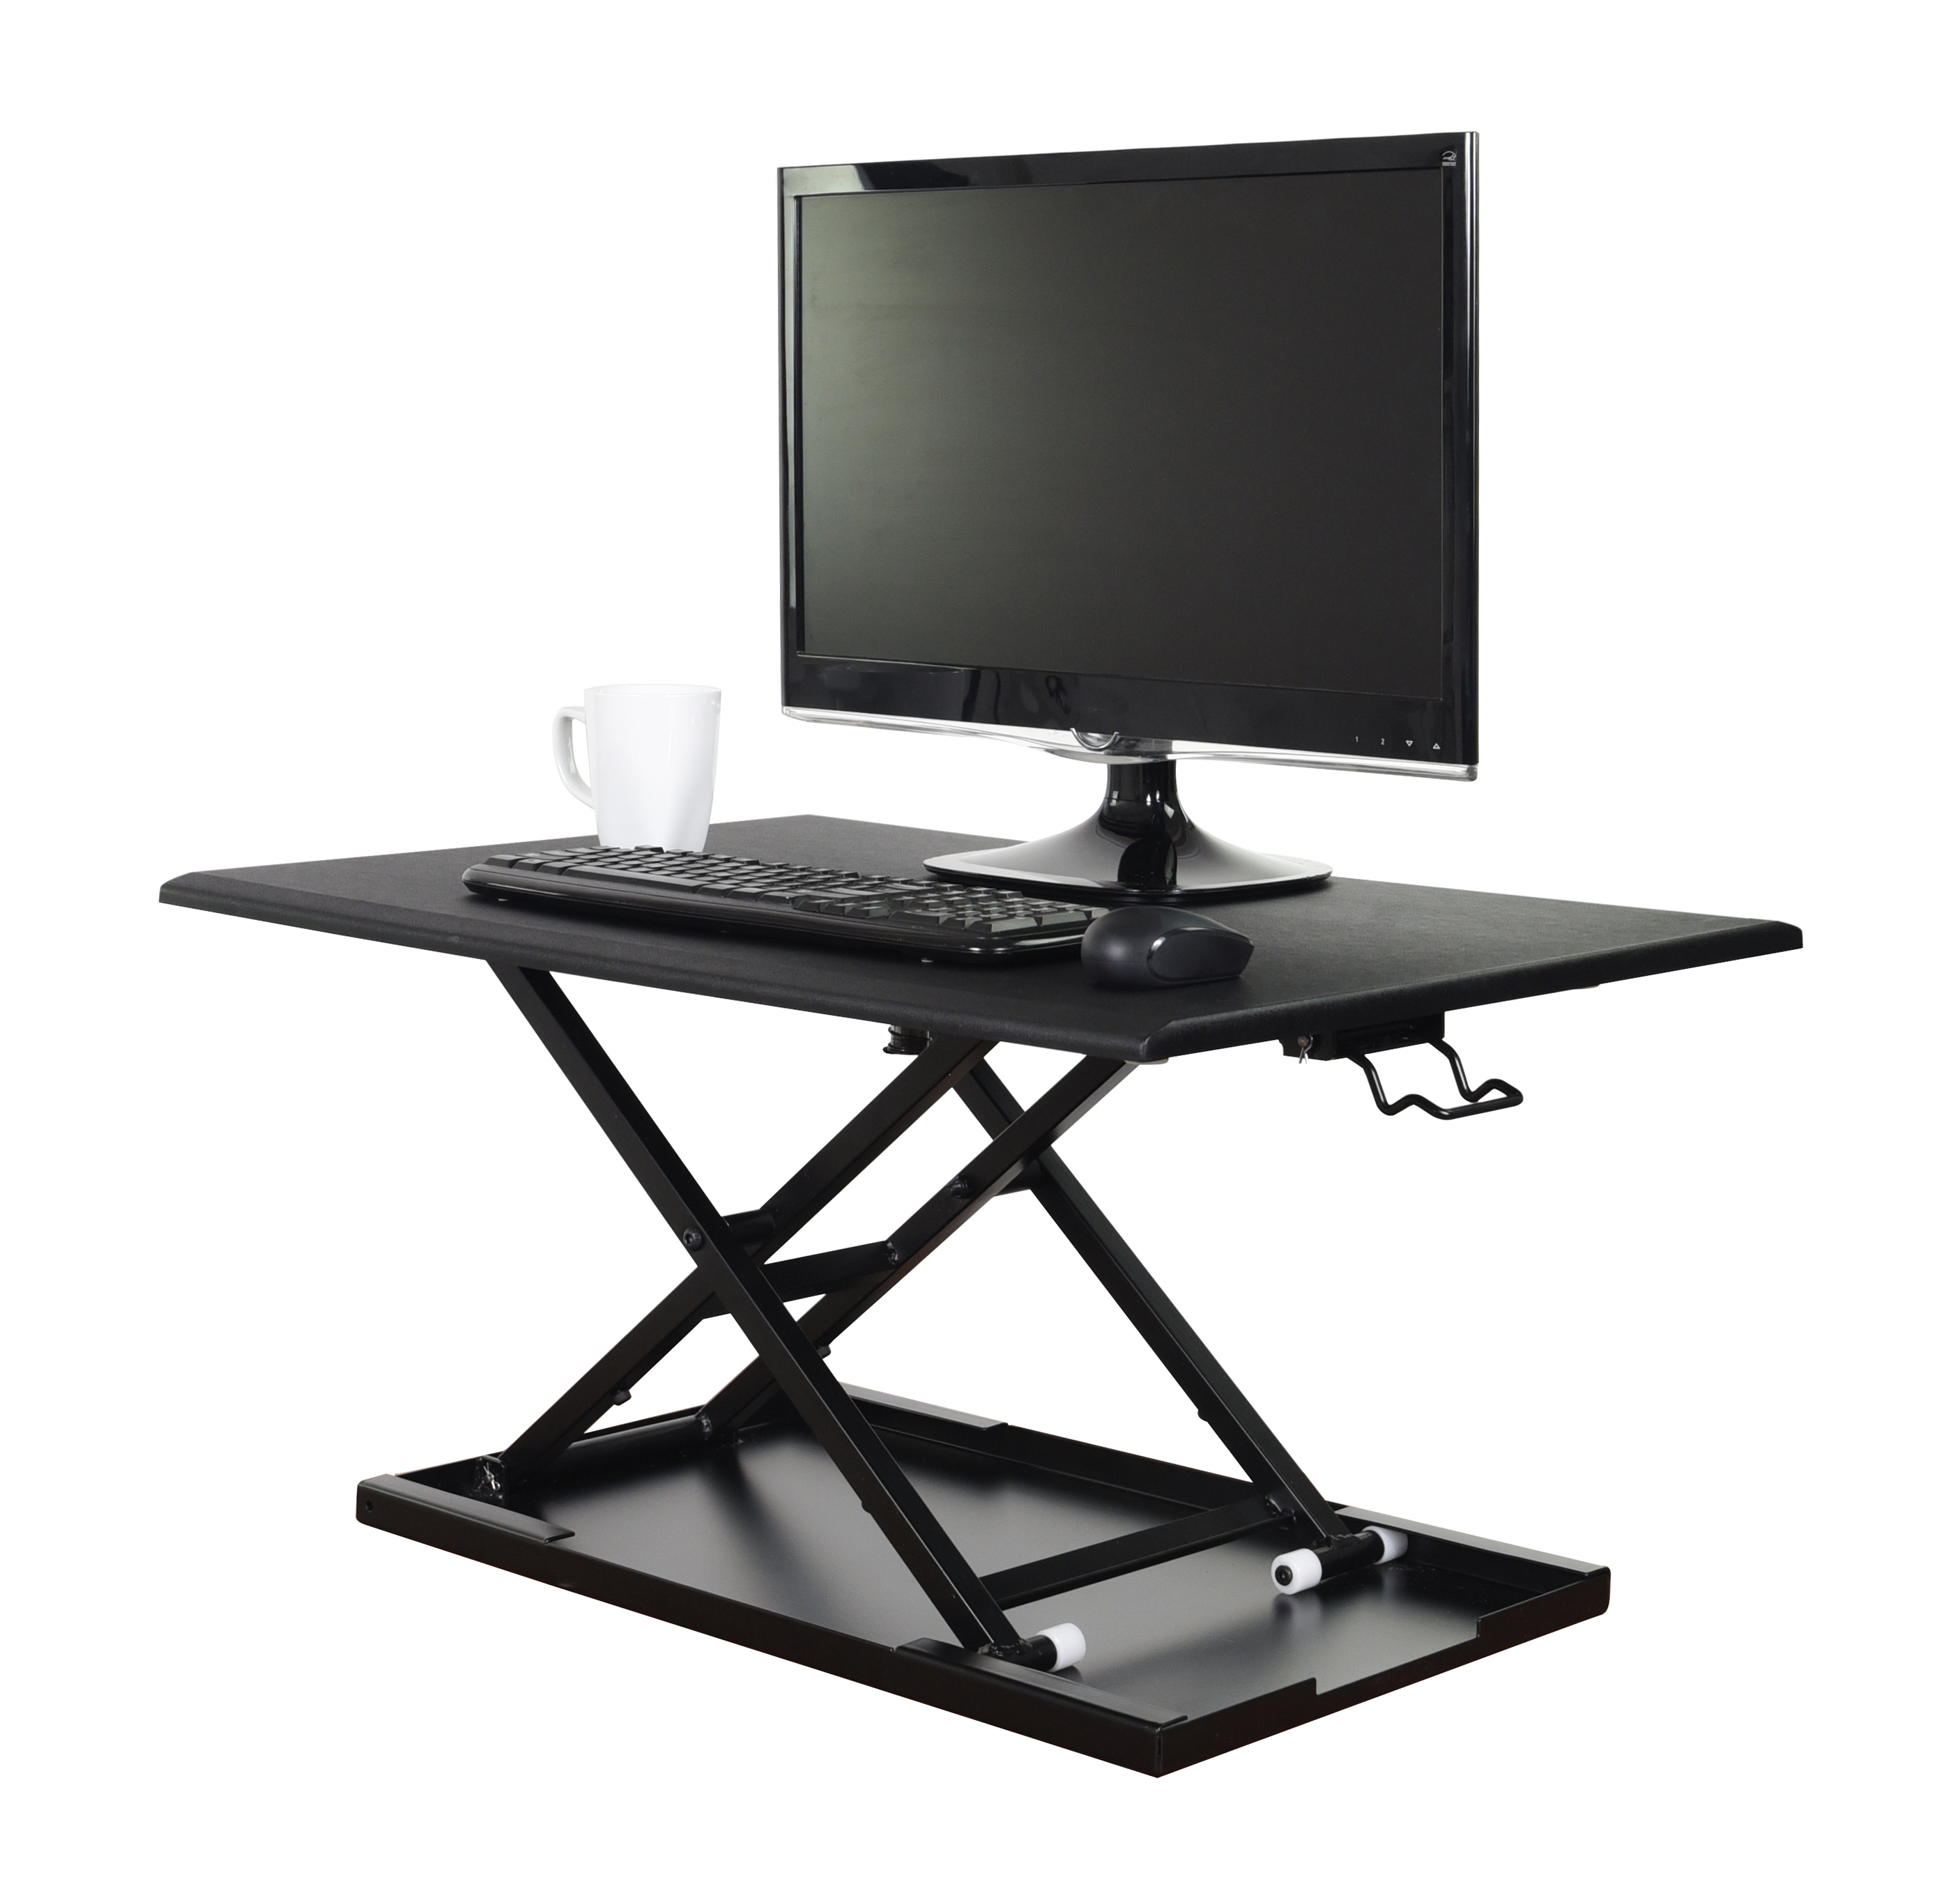 Luxor LVLUP32-BK Pneumatic Adjustable Desktop